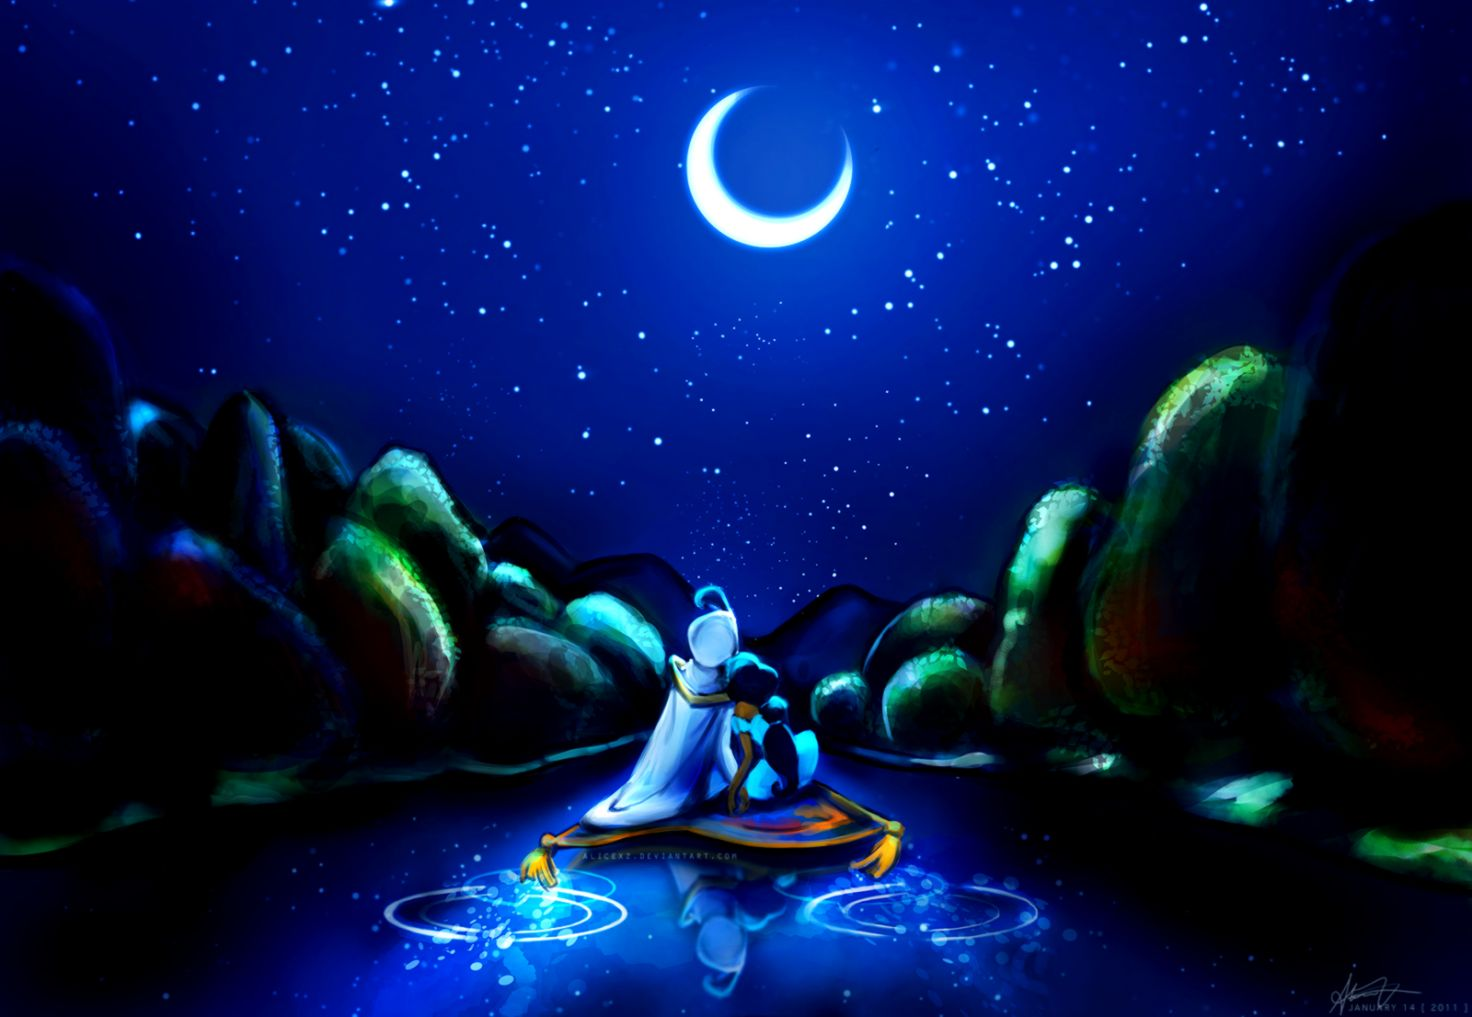 Aladdin Hd Wallpapers Wallpapers Gallery